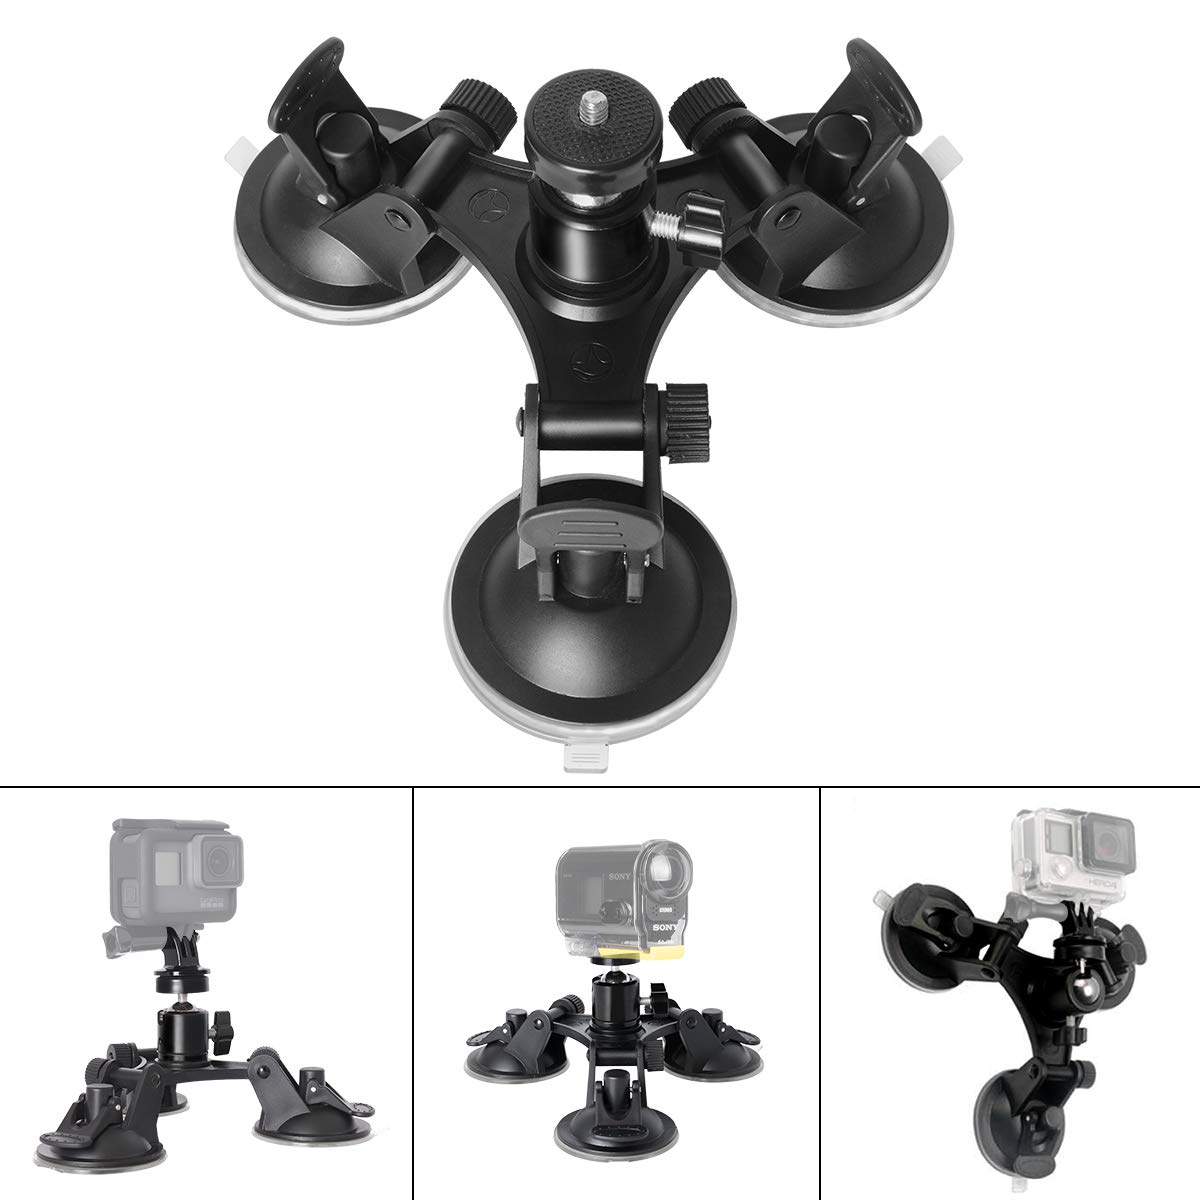 Triple Cup DSLR Camera Suction Mount w/Ball Head Compatible with Nikon Canon Sony DSLR/Camcorder + GoPro Hero 6 5/4/3 Sony Garmin Xiaomi Yi SJCAM Suction Cup Mount Car Mount Holder Window Mount